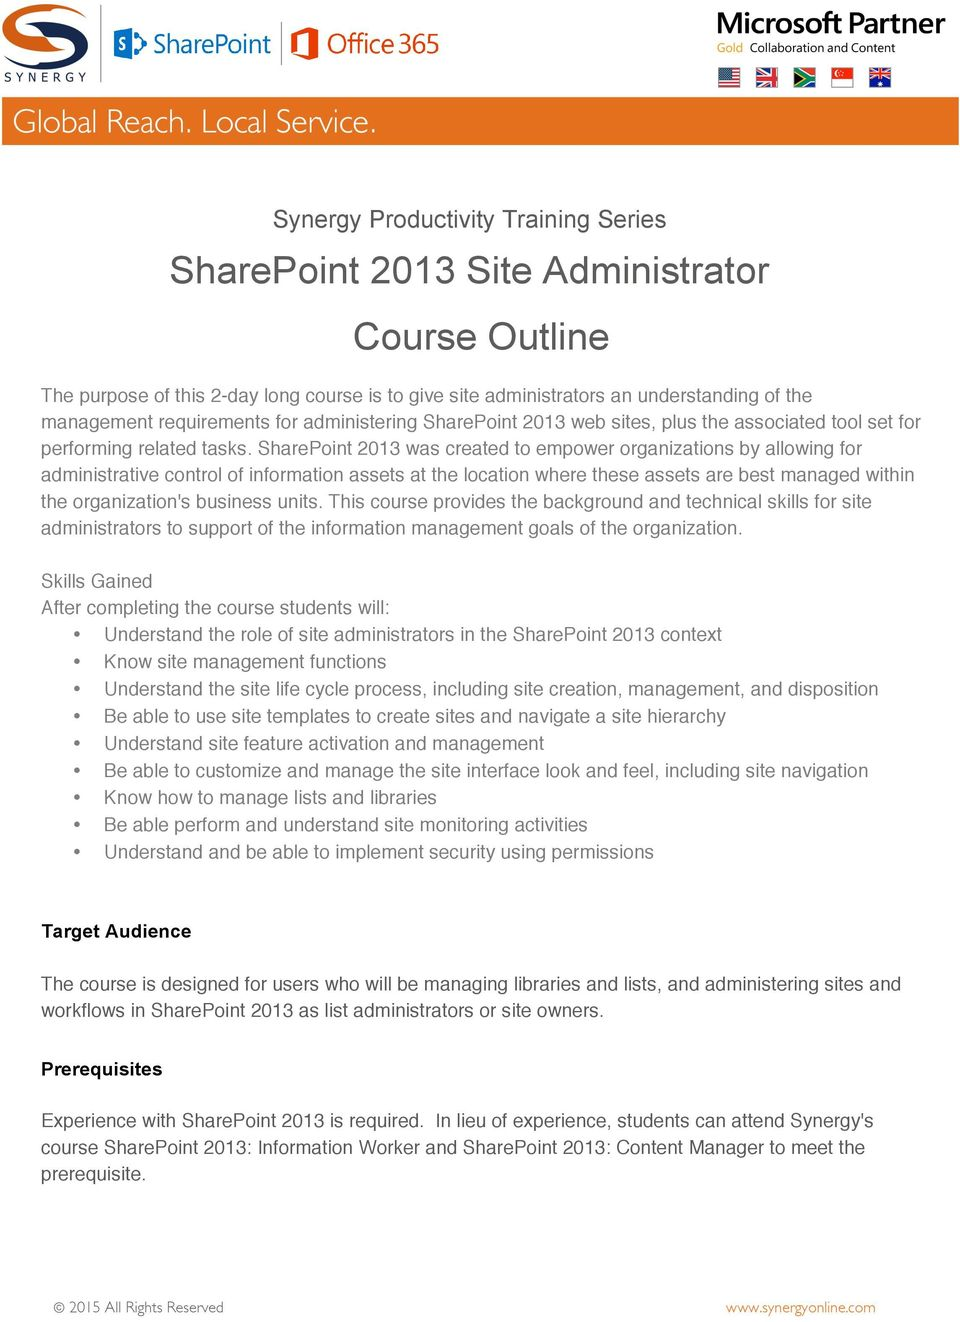 SharePoint 2013 was created to empower organizations by allowing for administrative control of information assets at the location where these assets are best managed within the organization's